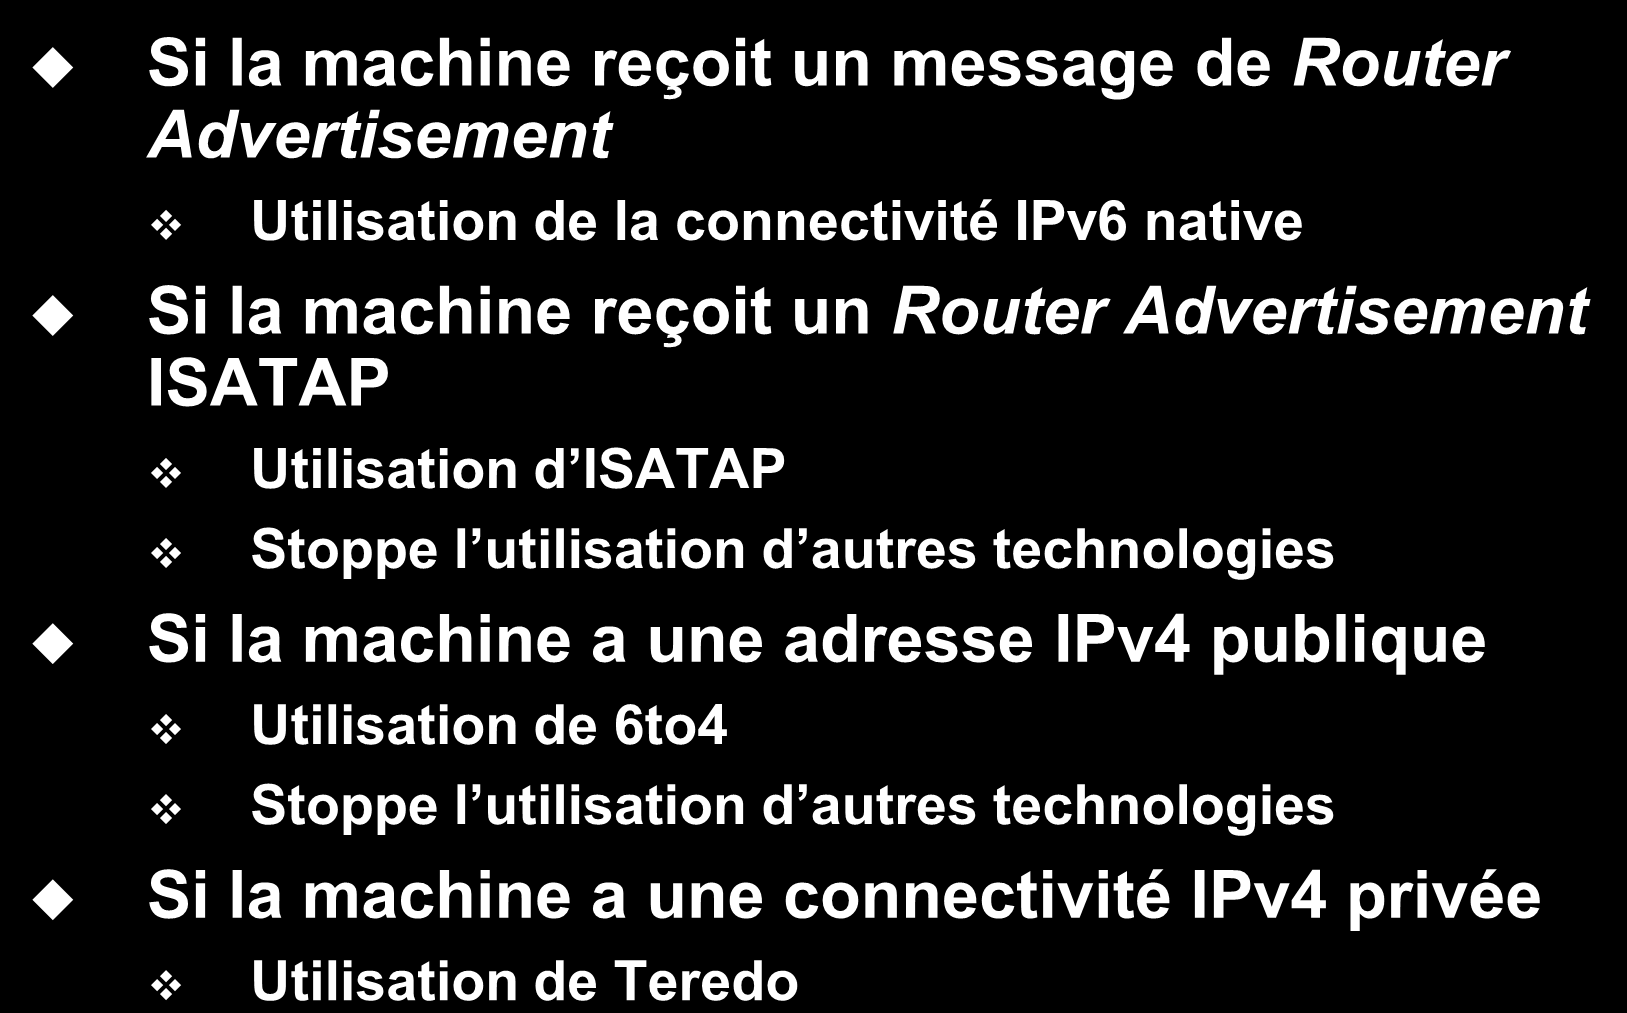 Utilisation des technologies de transition Si la machine reçoit un message de Router Advertisement Utilisation de la connectivité IPv6 native Si la machine reçoit un Router Advertisement ISATAP